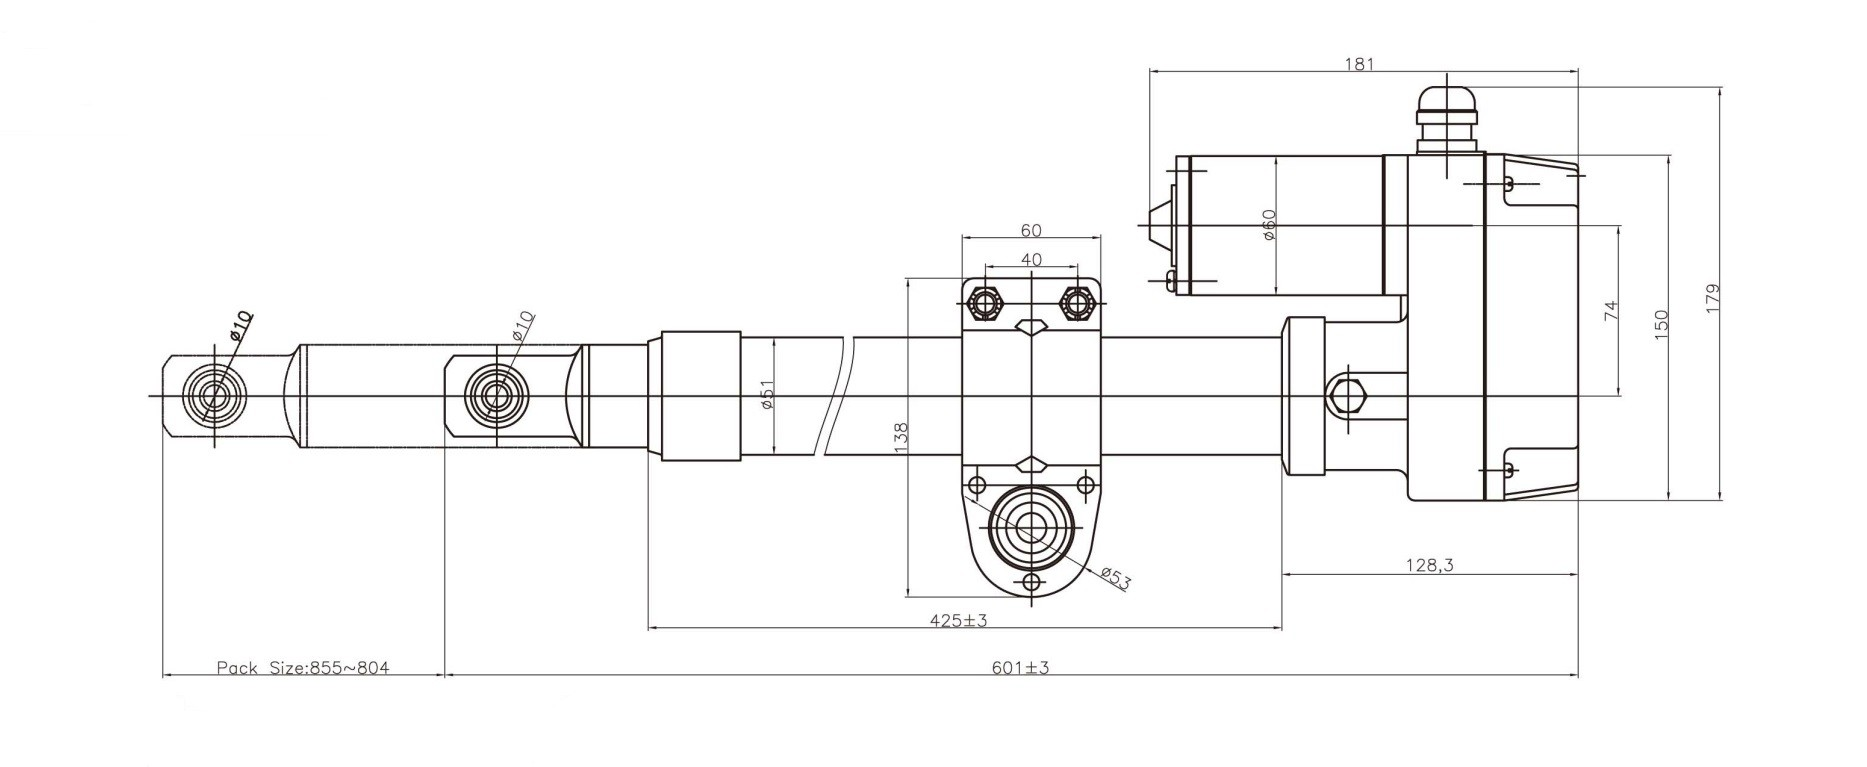 satellite-dish-actuator-heavy-duty-type-outline-drawing